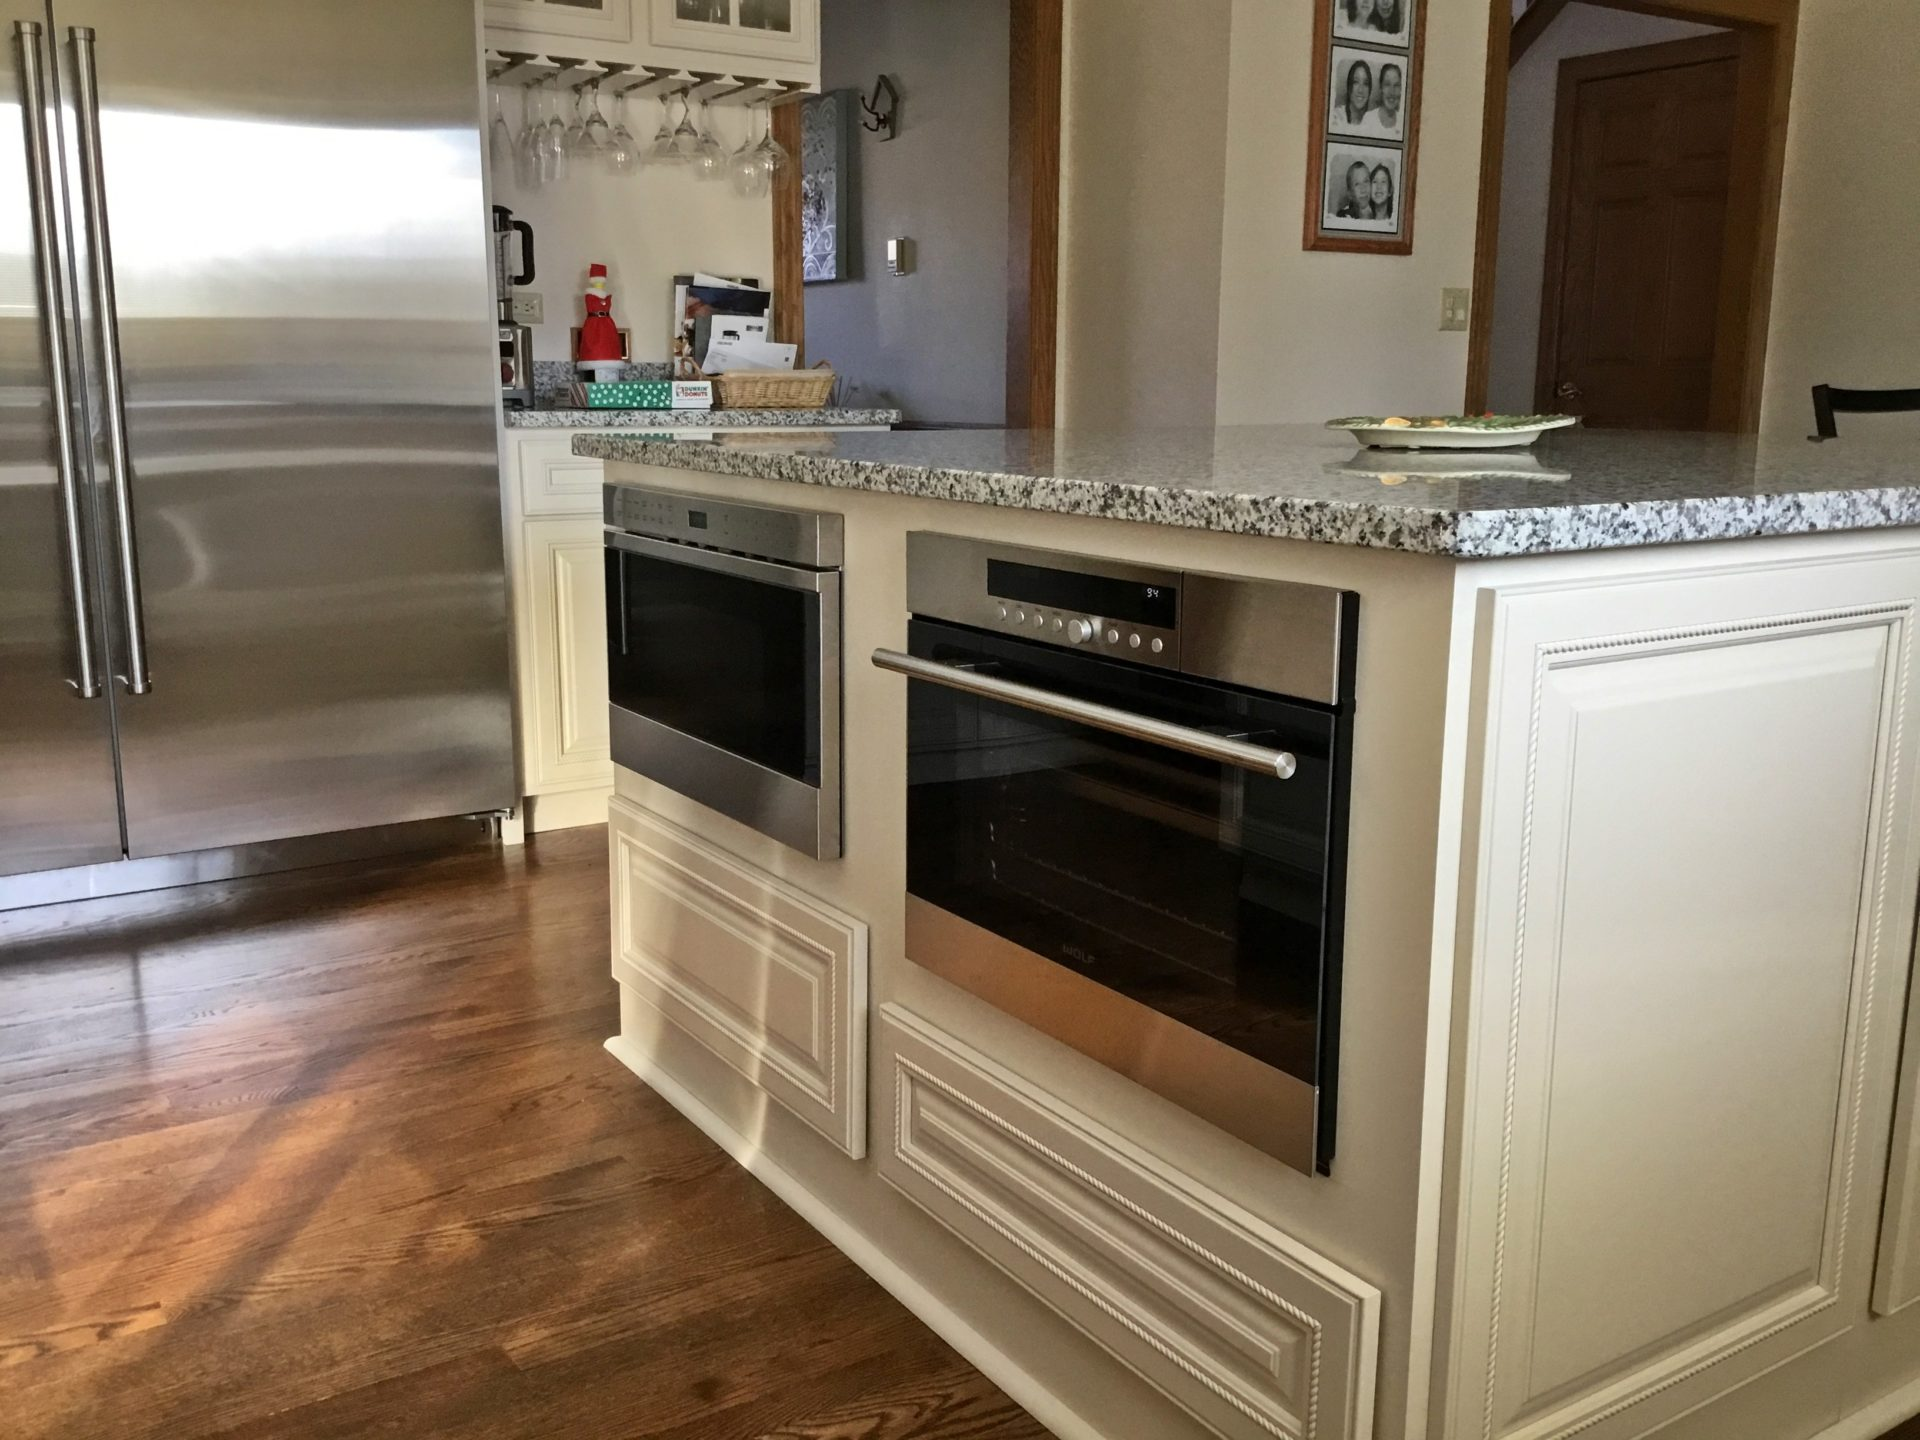 Storage and Finishes - J&J Construction Kitchen Remodeling